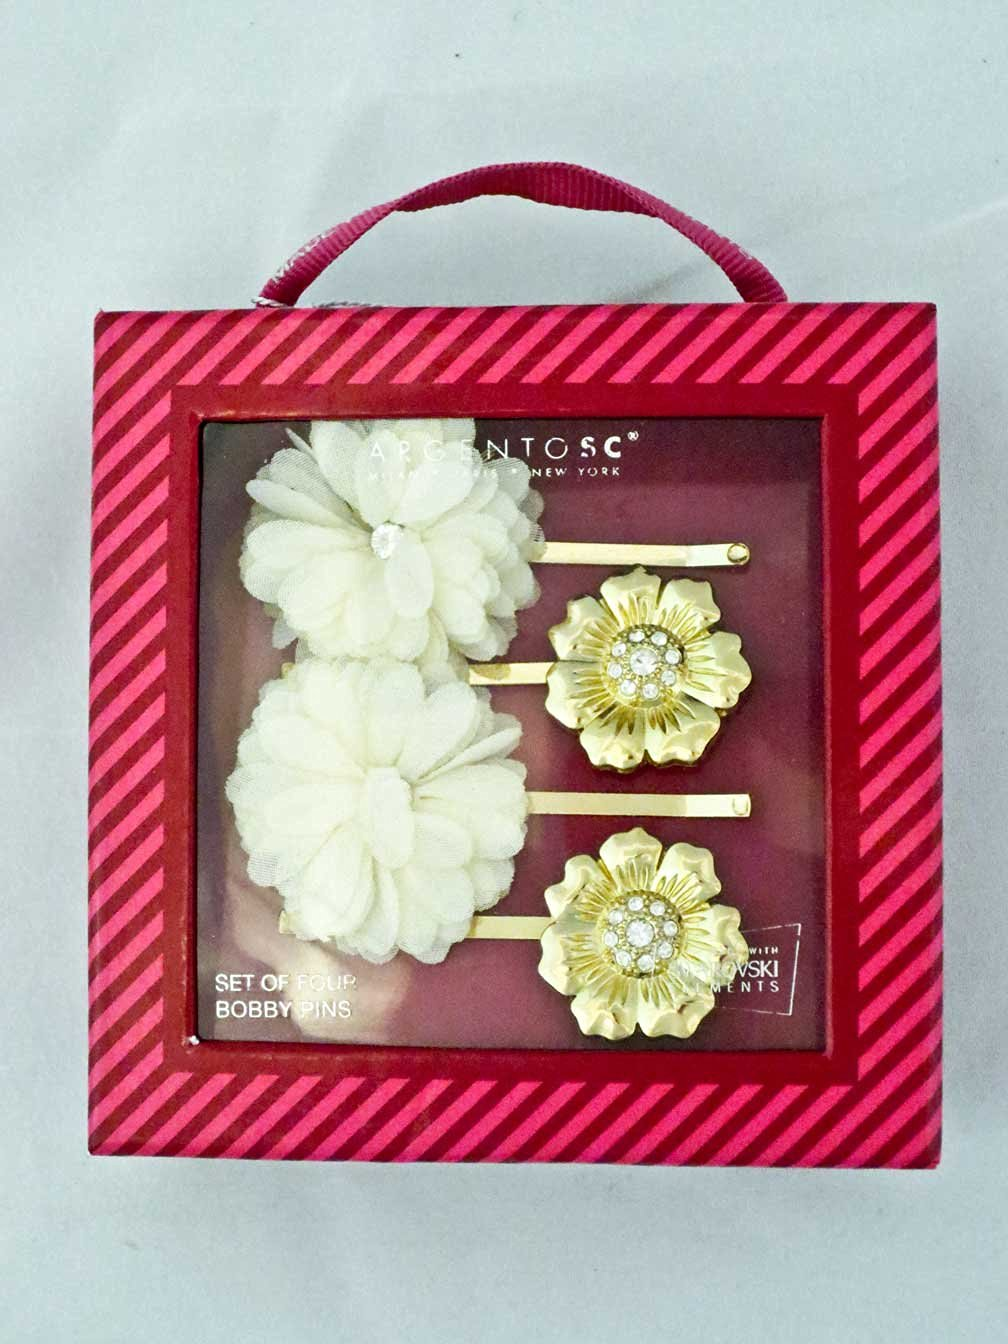 Argento SC Set of 4 Flower Bobby Pins in a Pink Box Made with Swarovski Elements